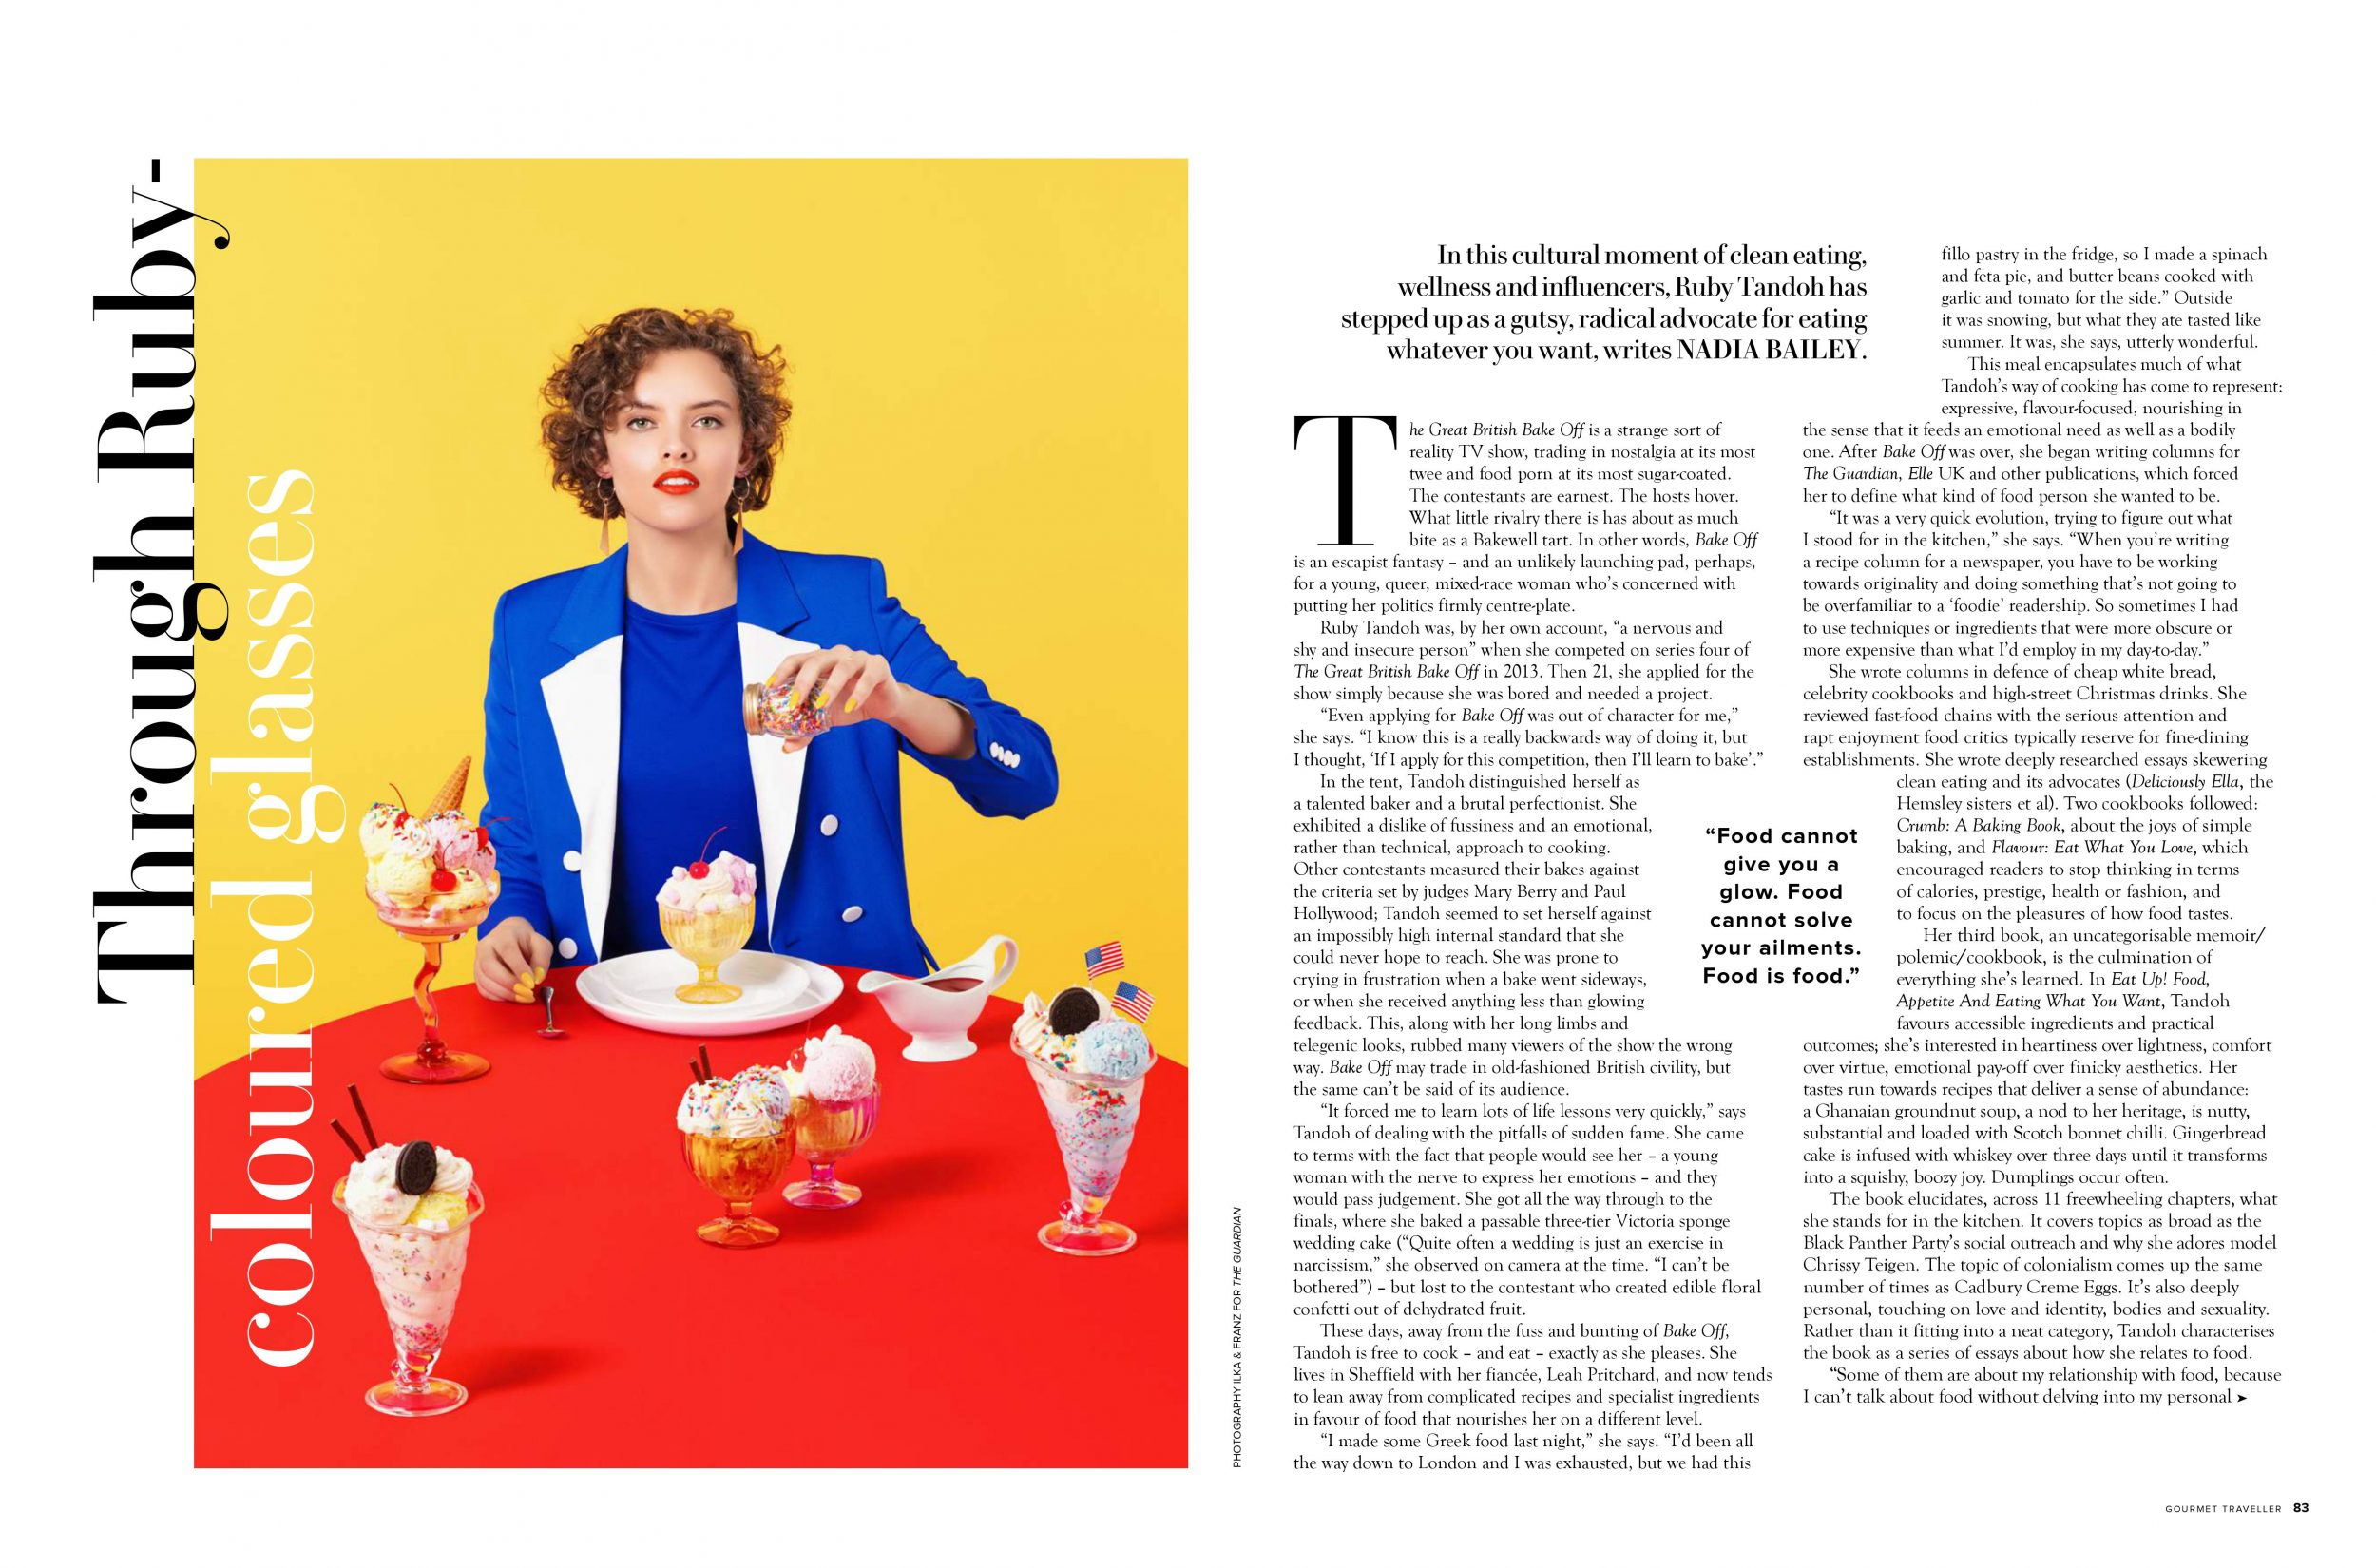 Ruby Tandoh interview in Australian Gourmet Traveller by Nadia Bailey